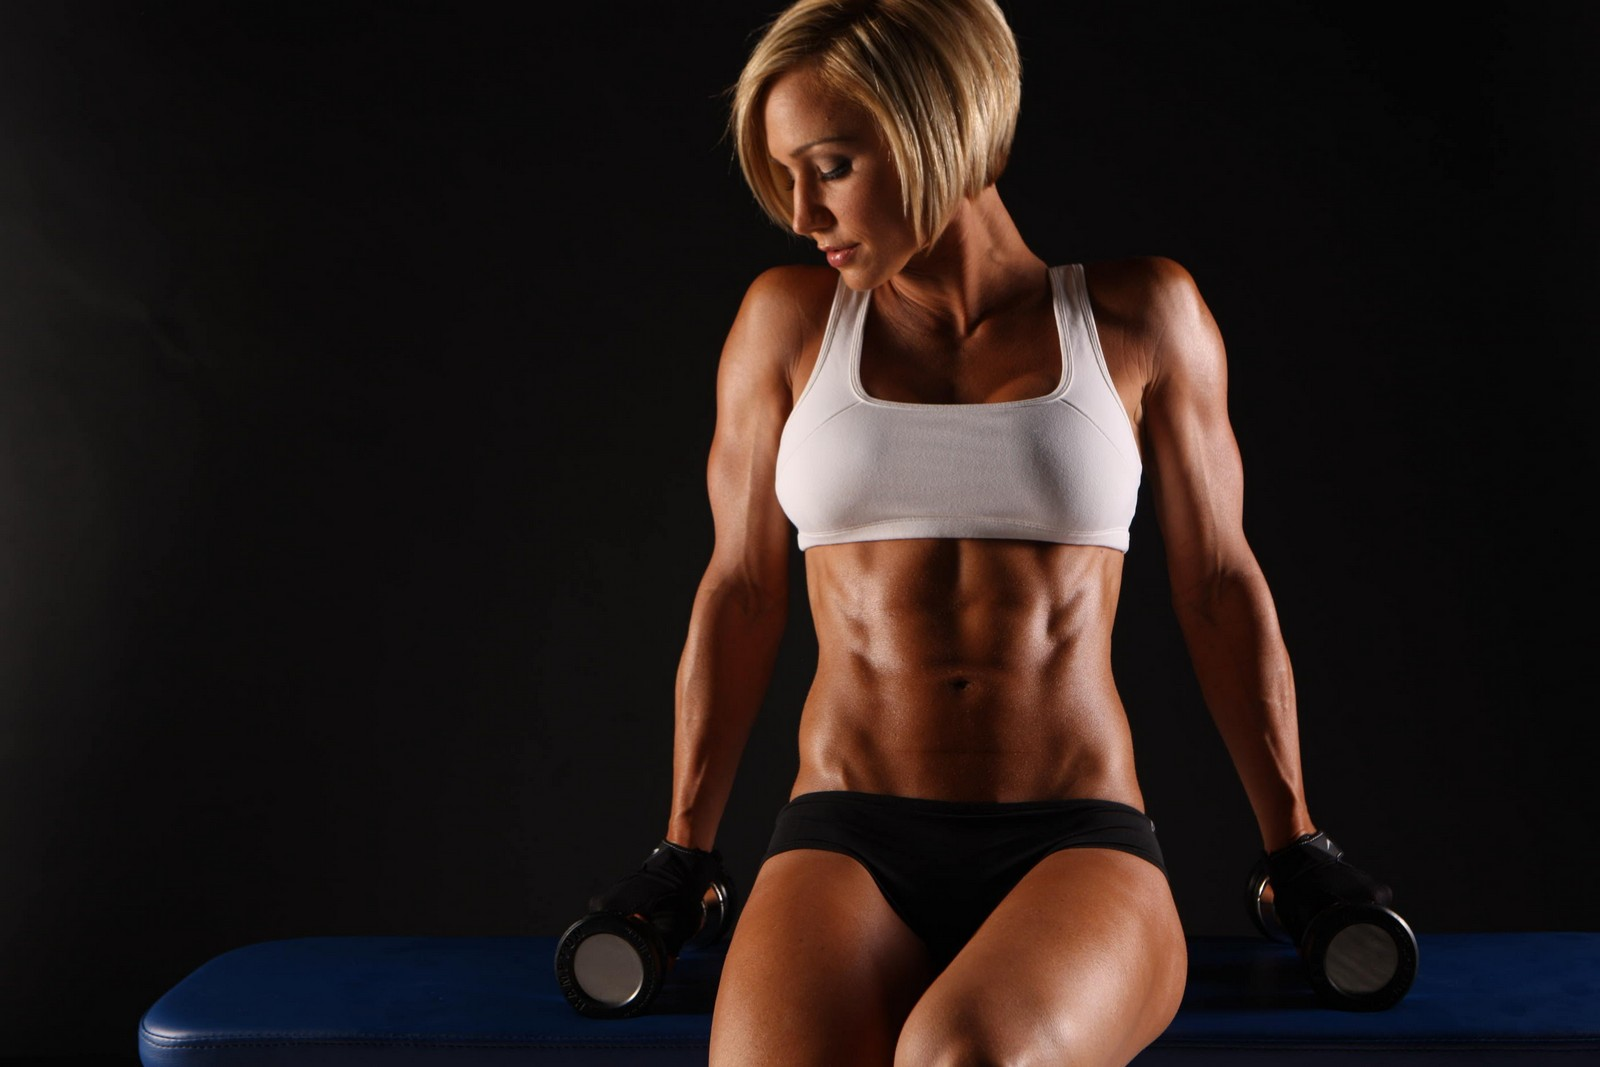 A fit girl seating on table